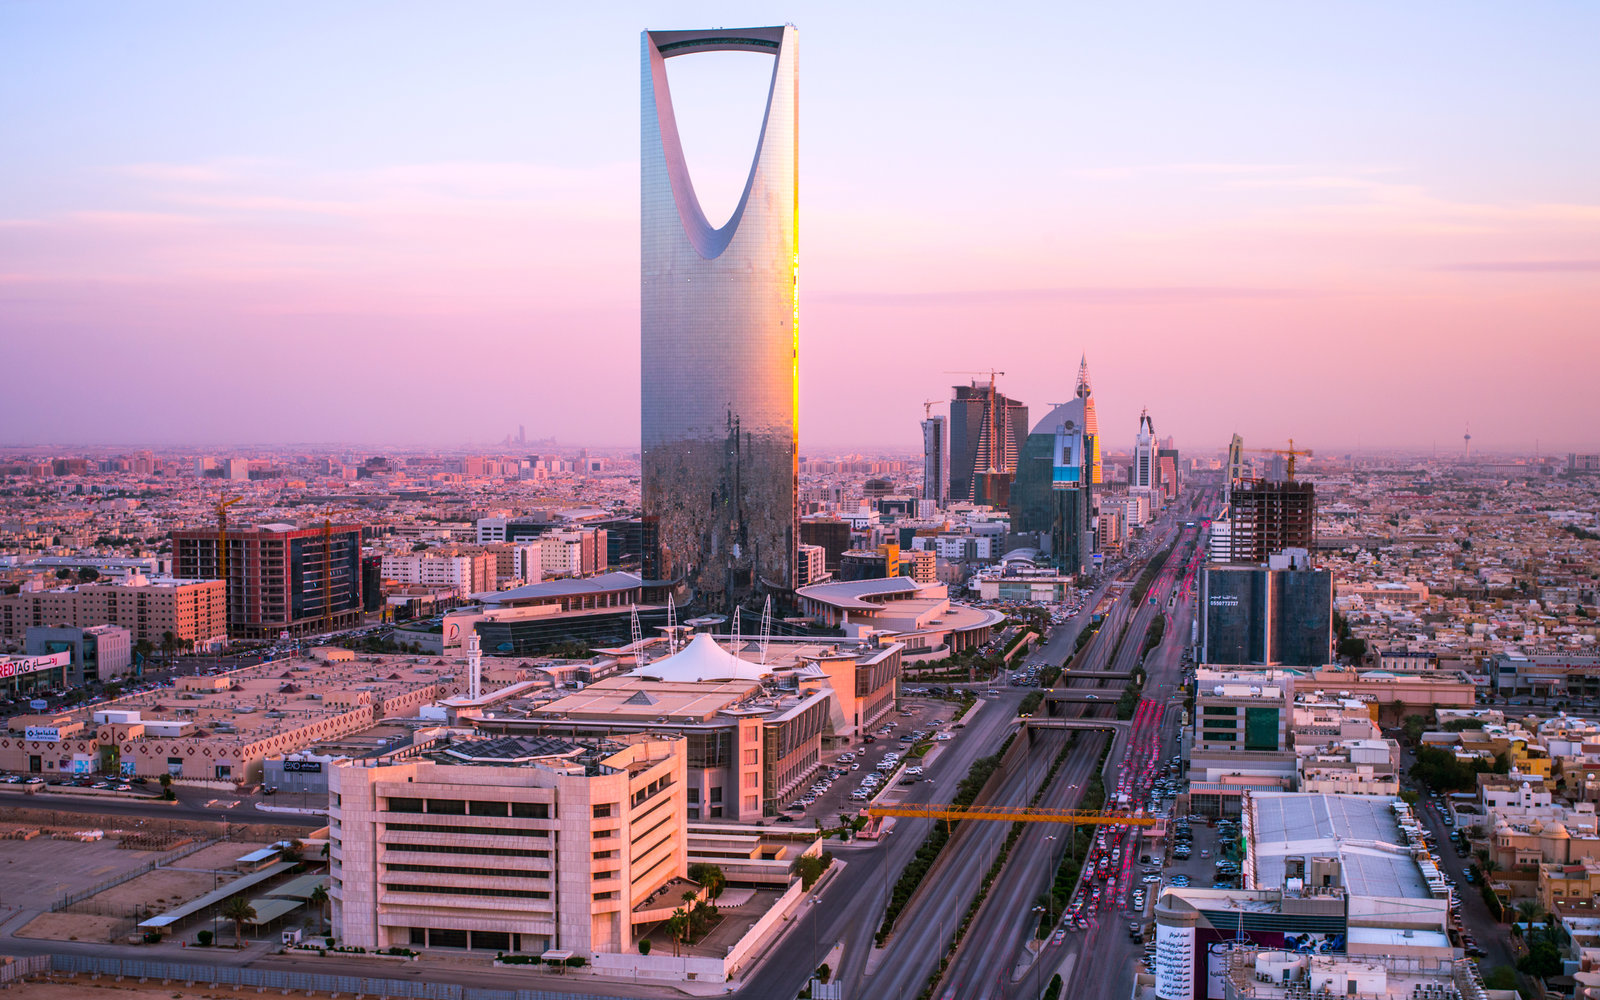 Saudi Arabia Opens Its Doors To U.S. Tour Company